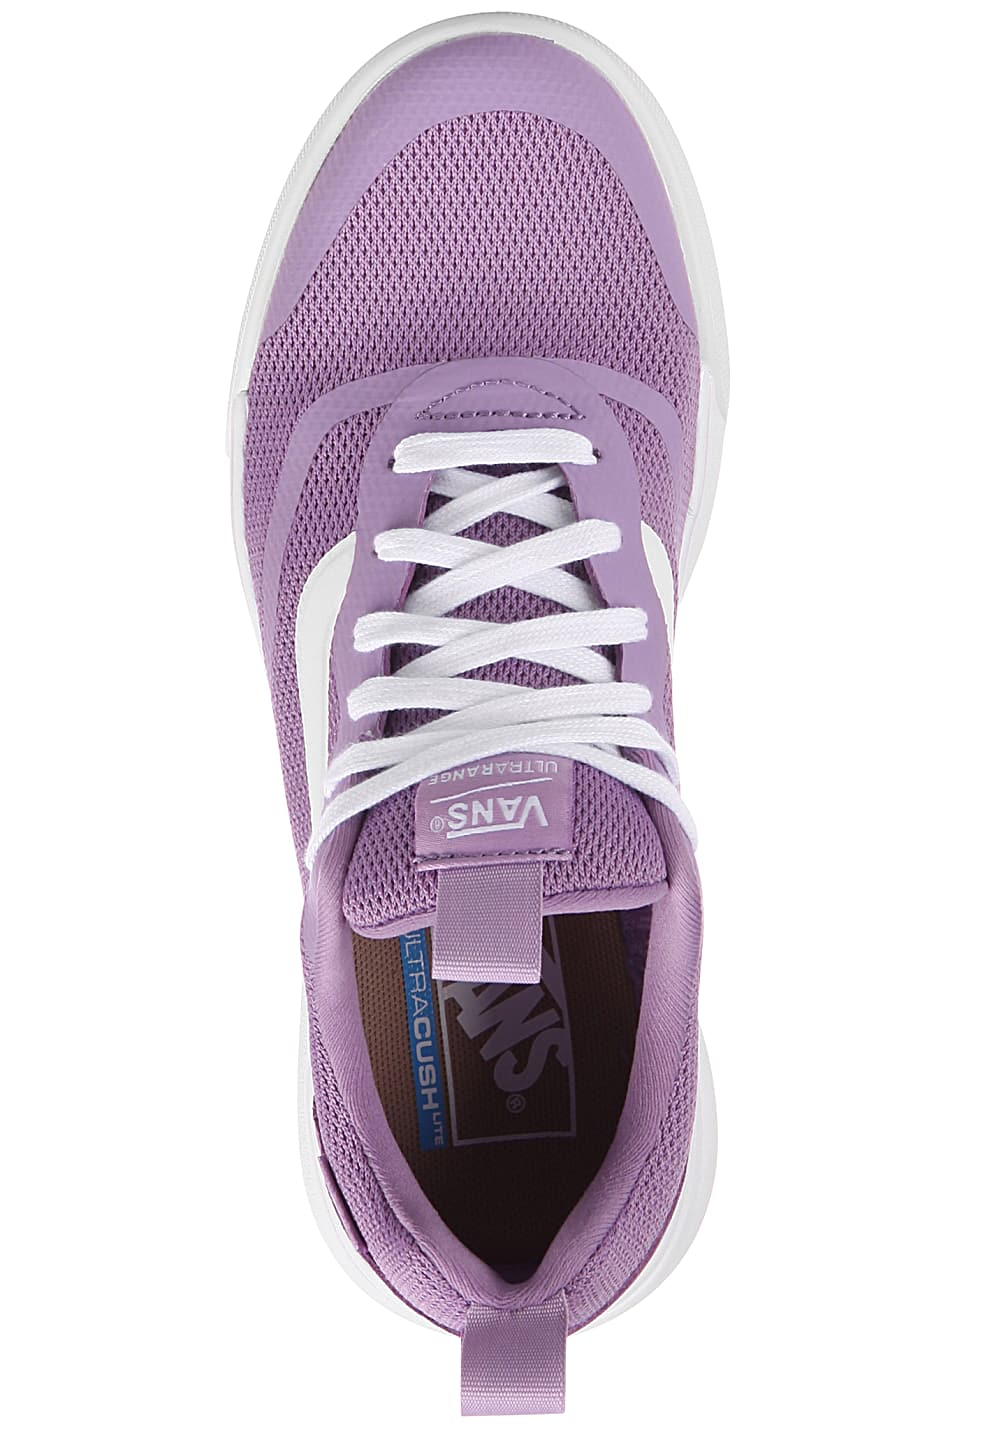 4e2fd20aed Next. -30%. This product is currently out of stock. Vans. Ultrarange  Rapidweld - Sneakers for Women